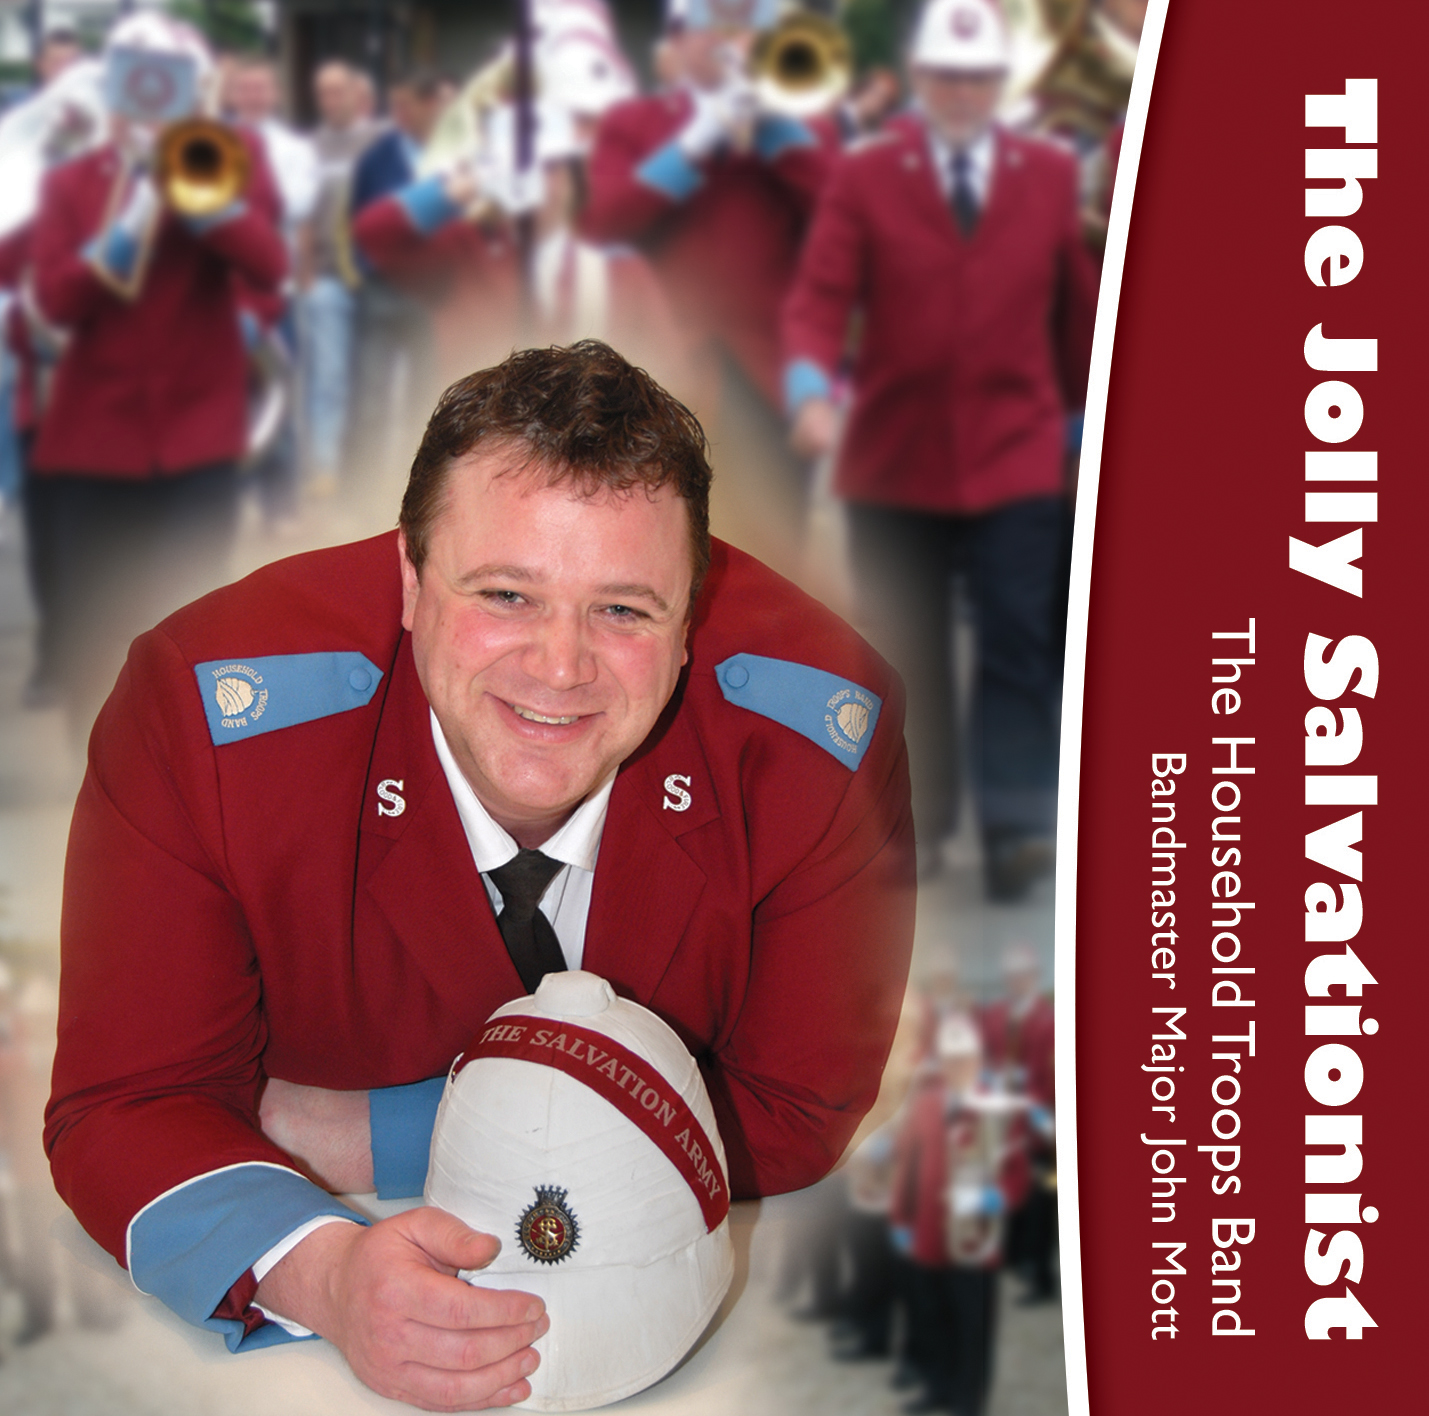 The Jolly Salvationist - Download